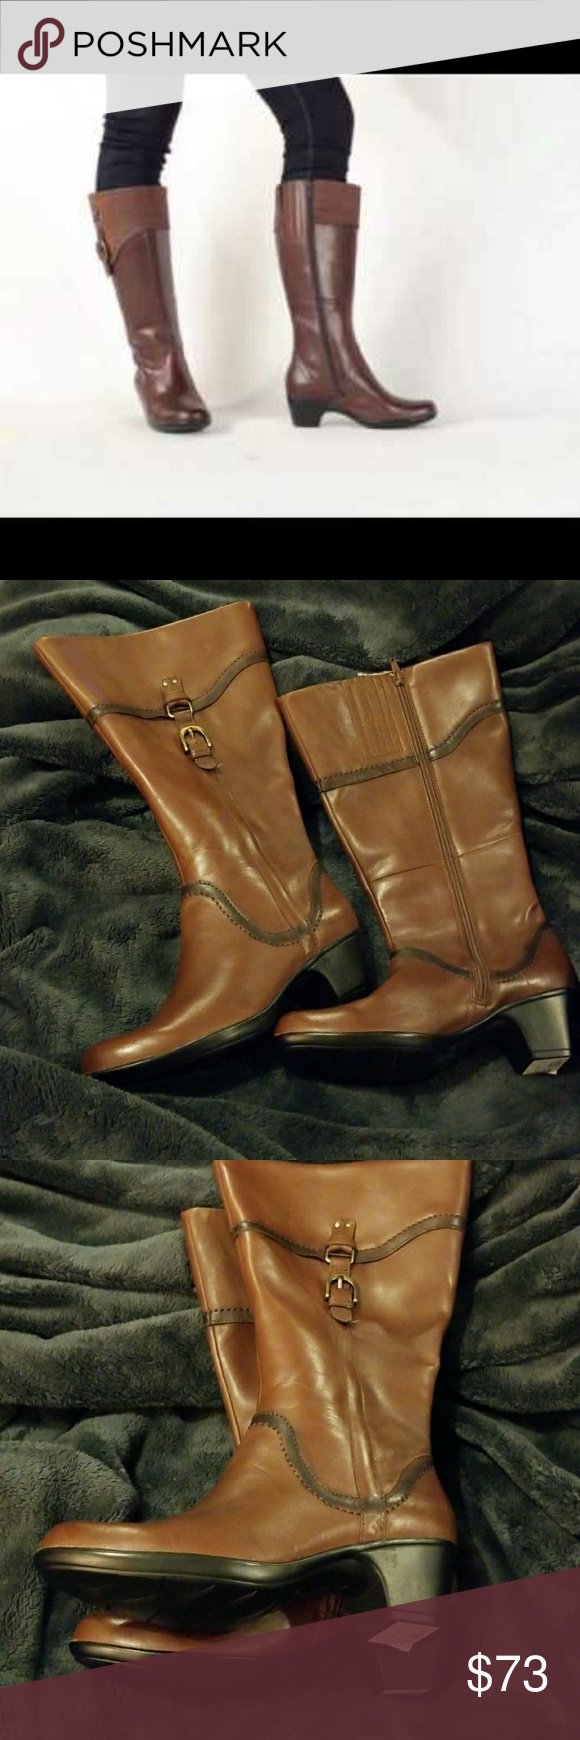 15546e337076 Wide Calf! Clarks Ingalls Vicky 2 Leather Boots These wide calf-width boots  feature